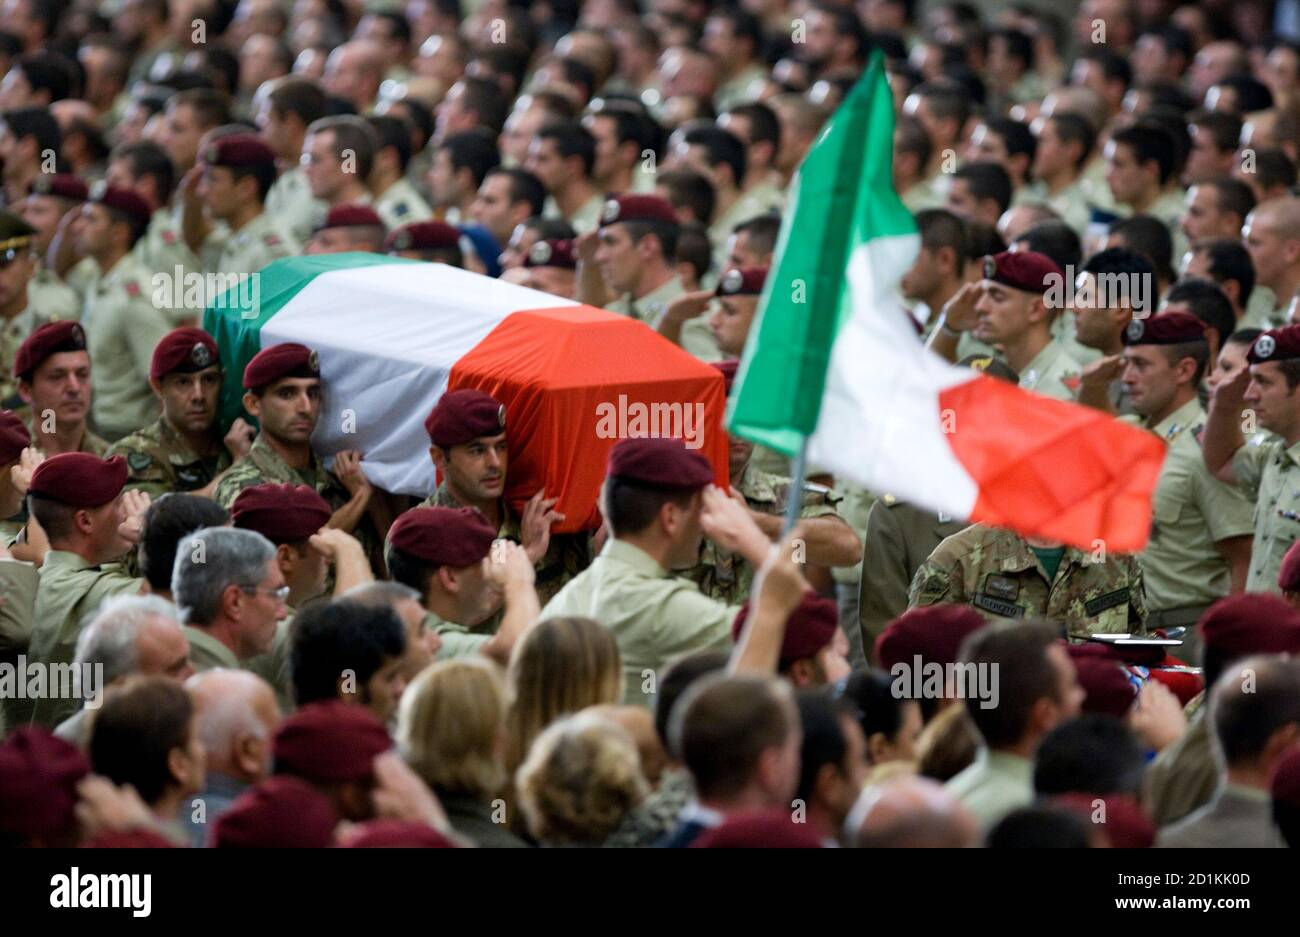 """Italian soldiers carry the coffin of one of the six Italian soldiers killed in Afghanistan, as the Italy national flag flies during a funeral service at Saint Paul Basilica in Rome September 21, 2009. Italy wants to withdraw its troops from Afghanistan """"as soon as possible"""" but will not take the decision unilaterally, Berlusconi said on Thursday.   REUTERS/Alessandro Bianchi   (ITALY POLITICS CONFLICT OBITUARY IMAGES OF THE DAY) Banque D'Images"""